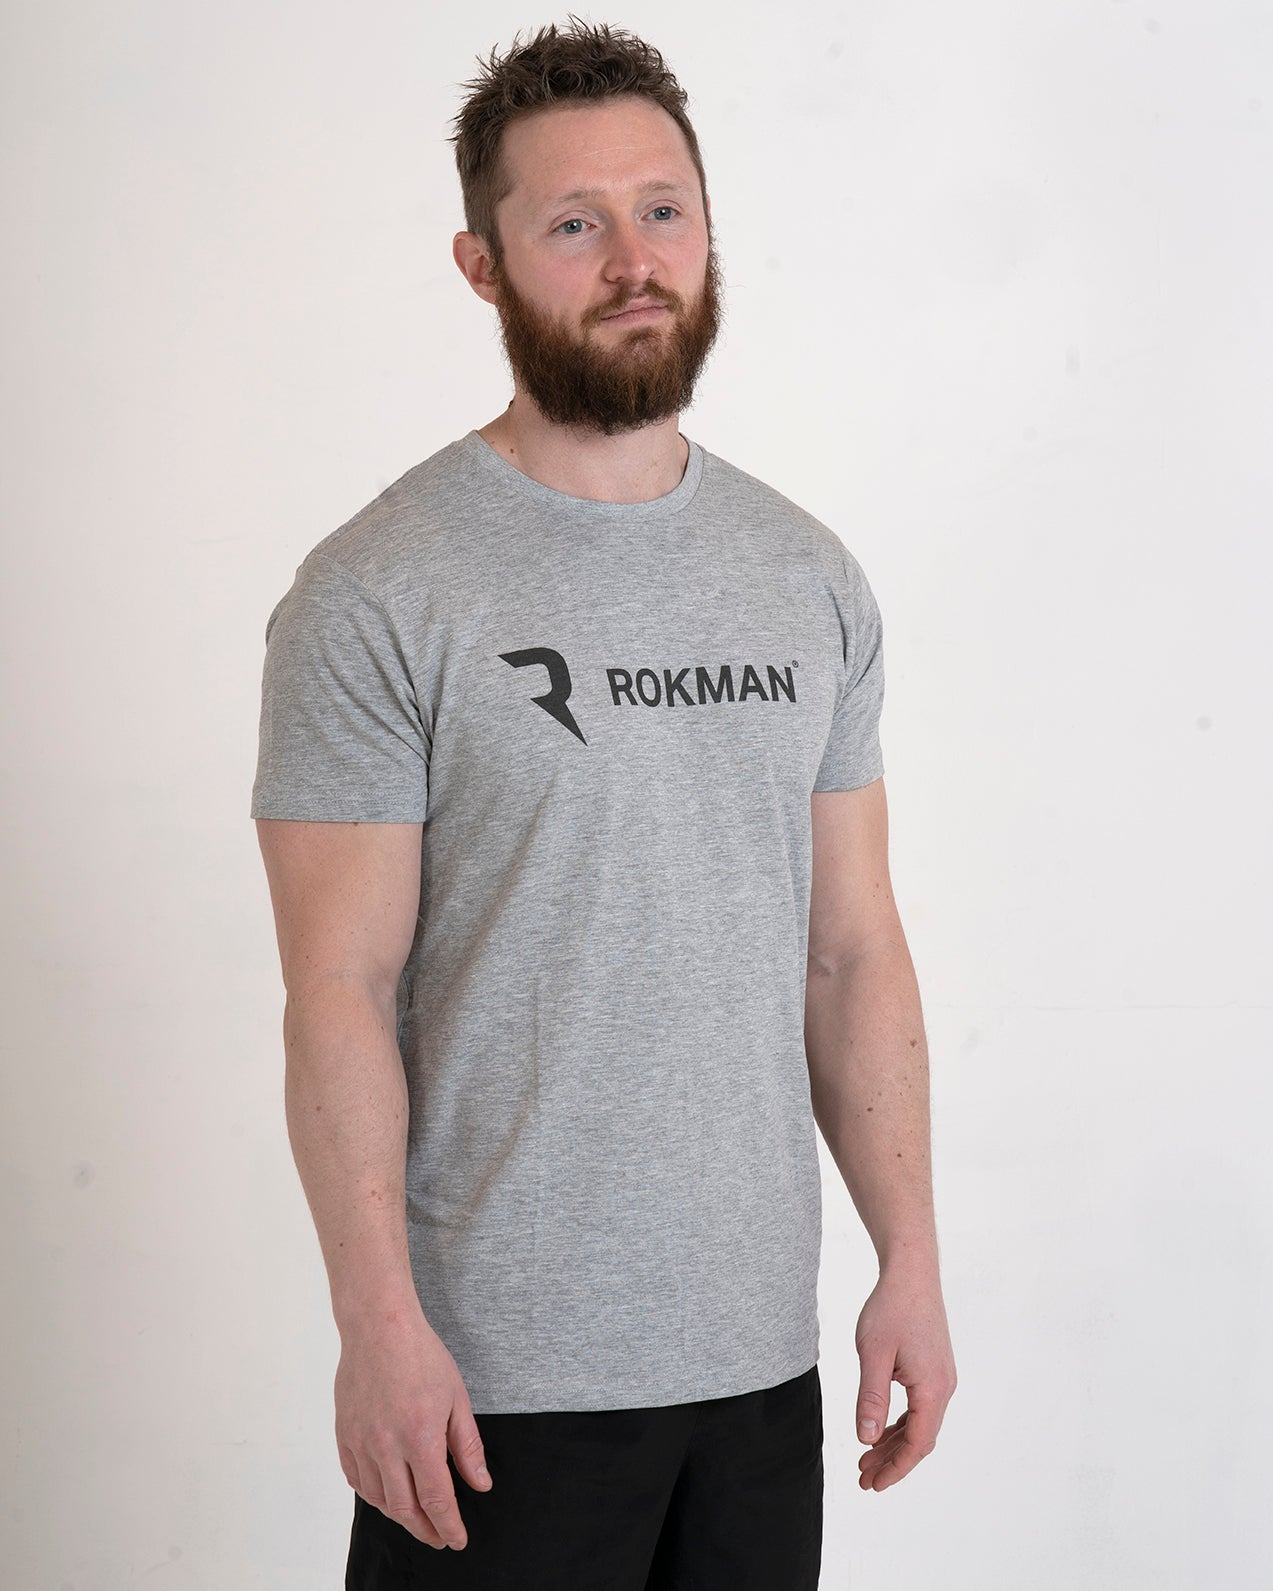 Rokman Ident Light Cotton Sports Grey Male T-Shirt